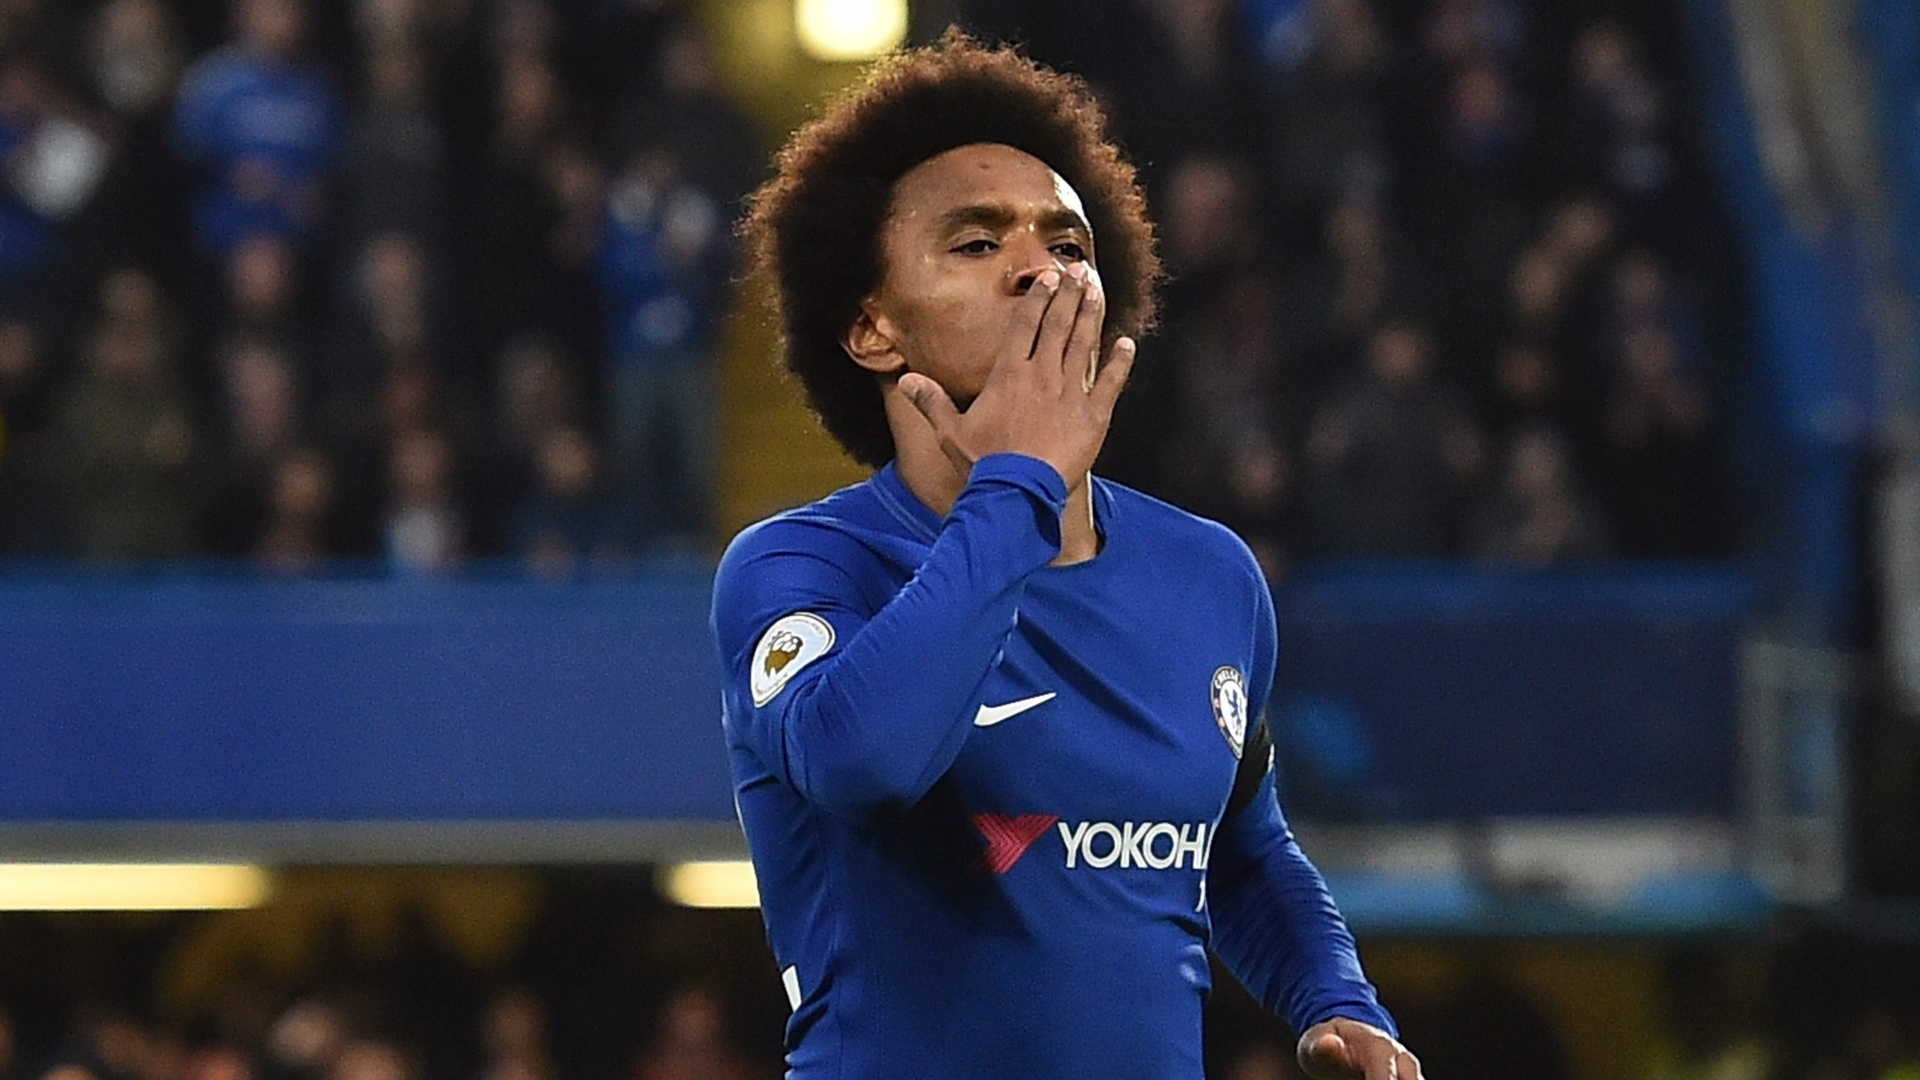 Willian abre o placar para o Chelsea contra o Crystal Palace